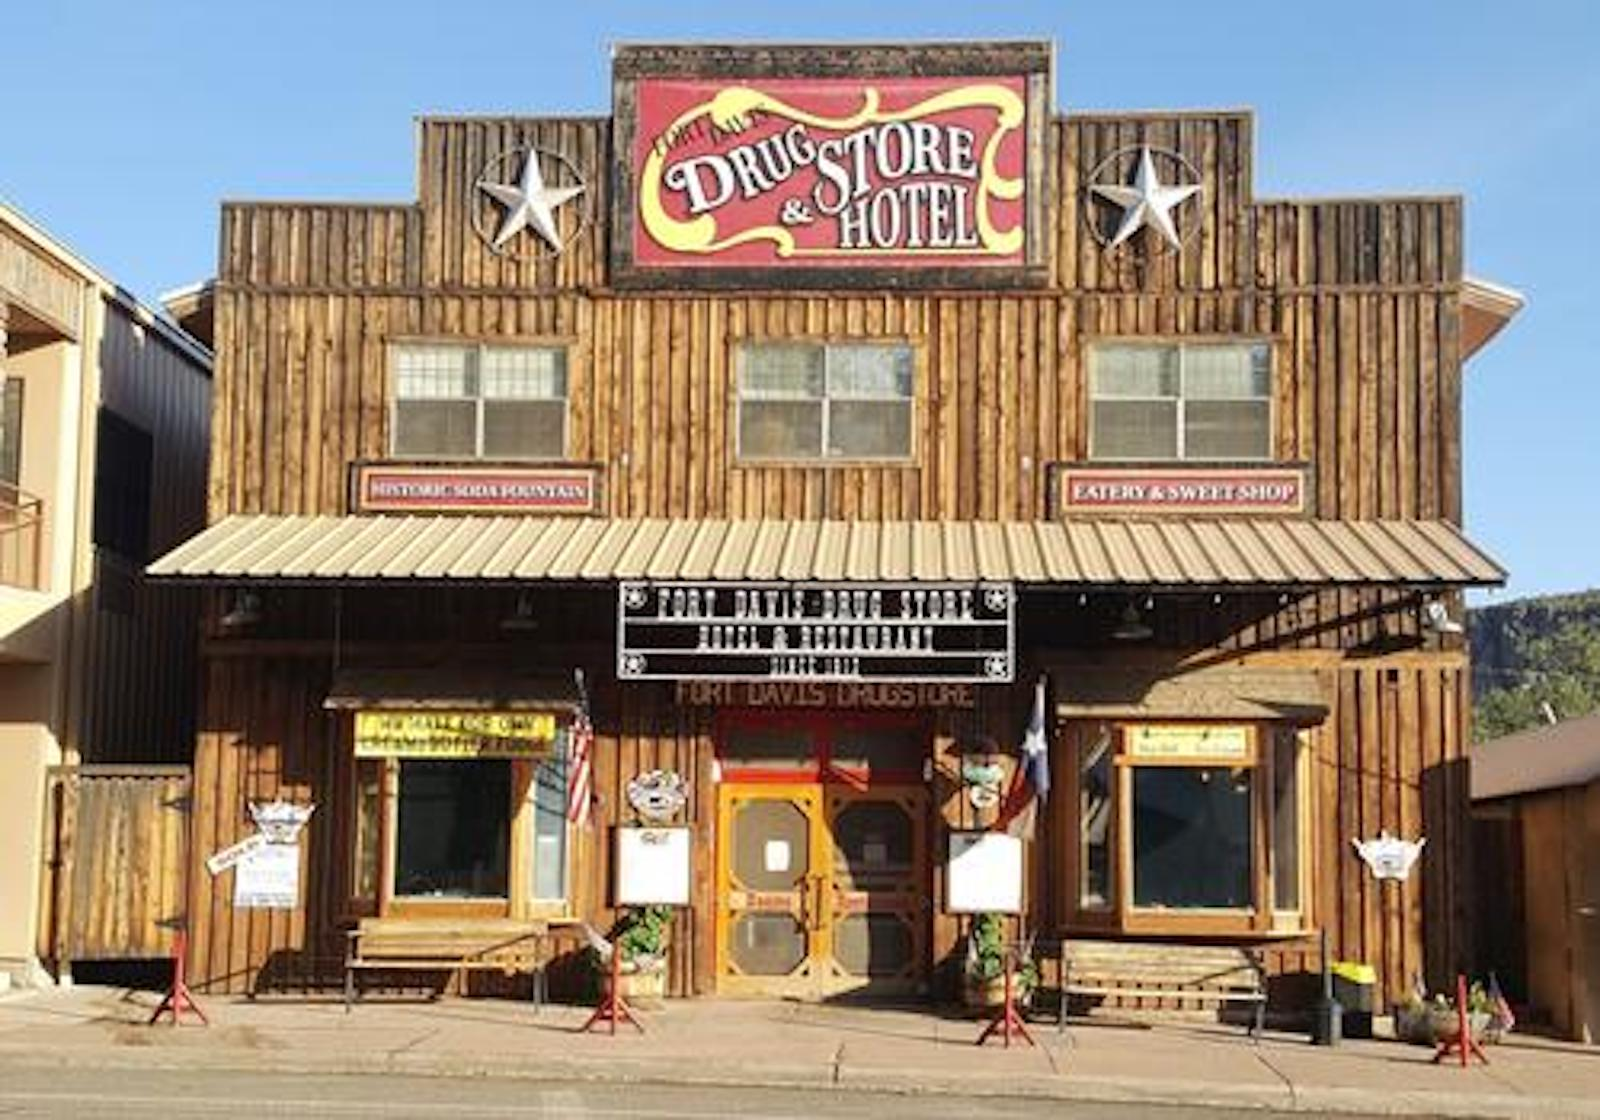 A store front at day at Fort Davis Drug Store & Hotel.